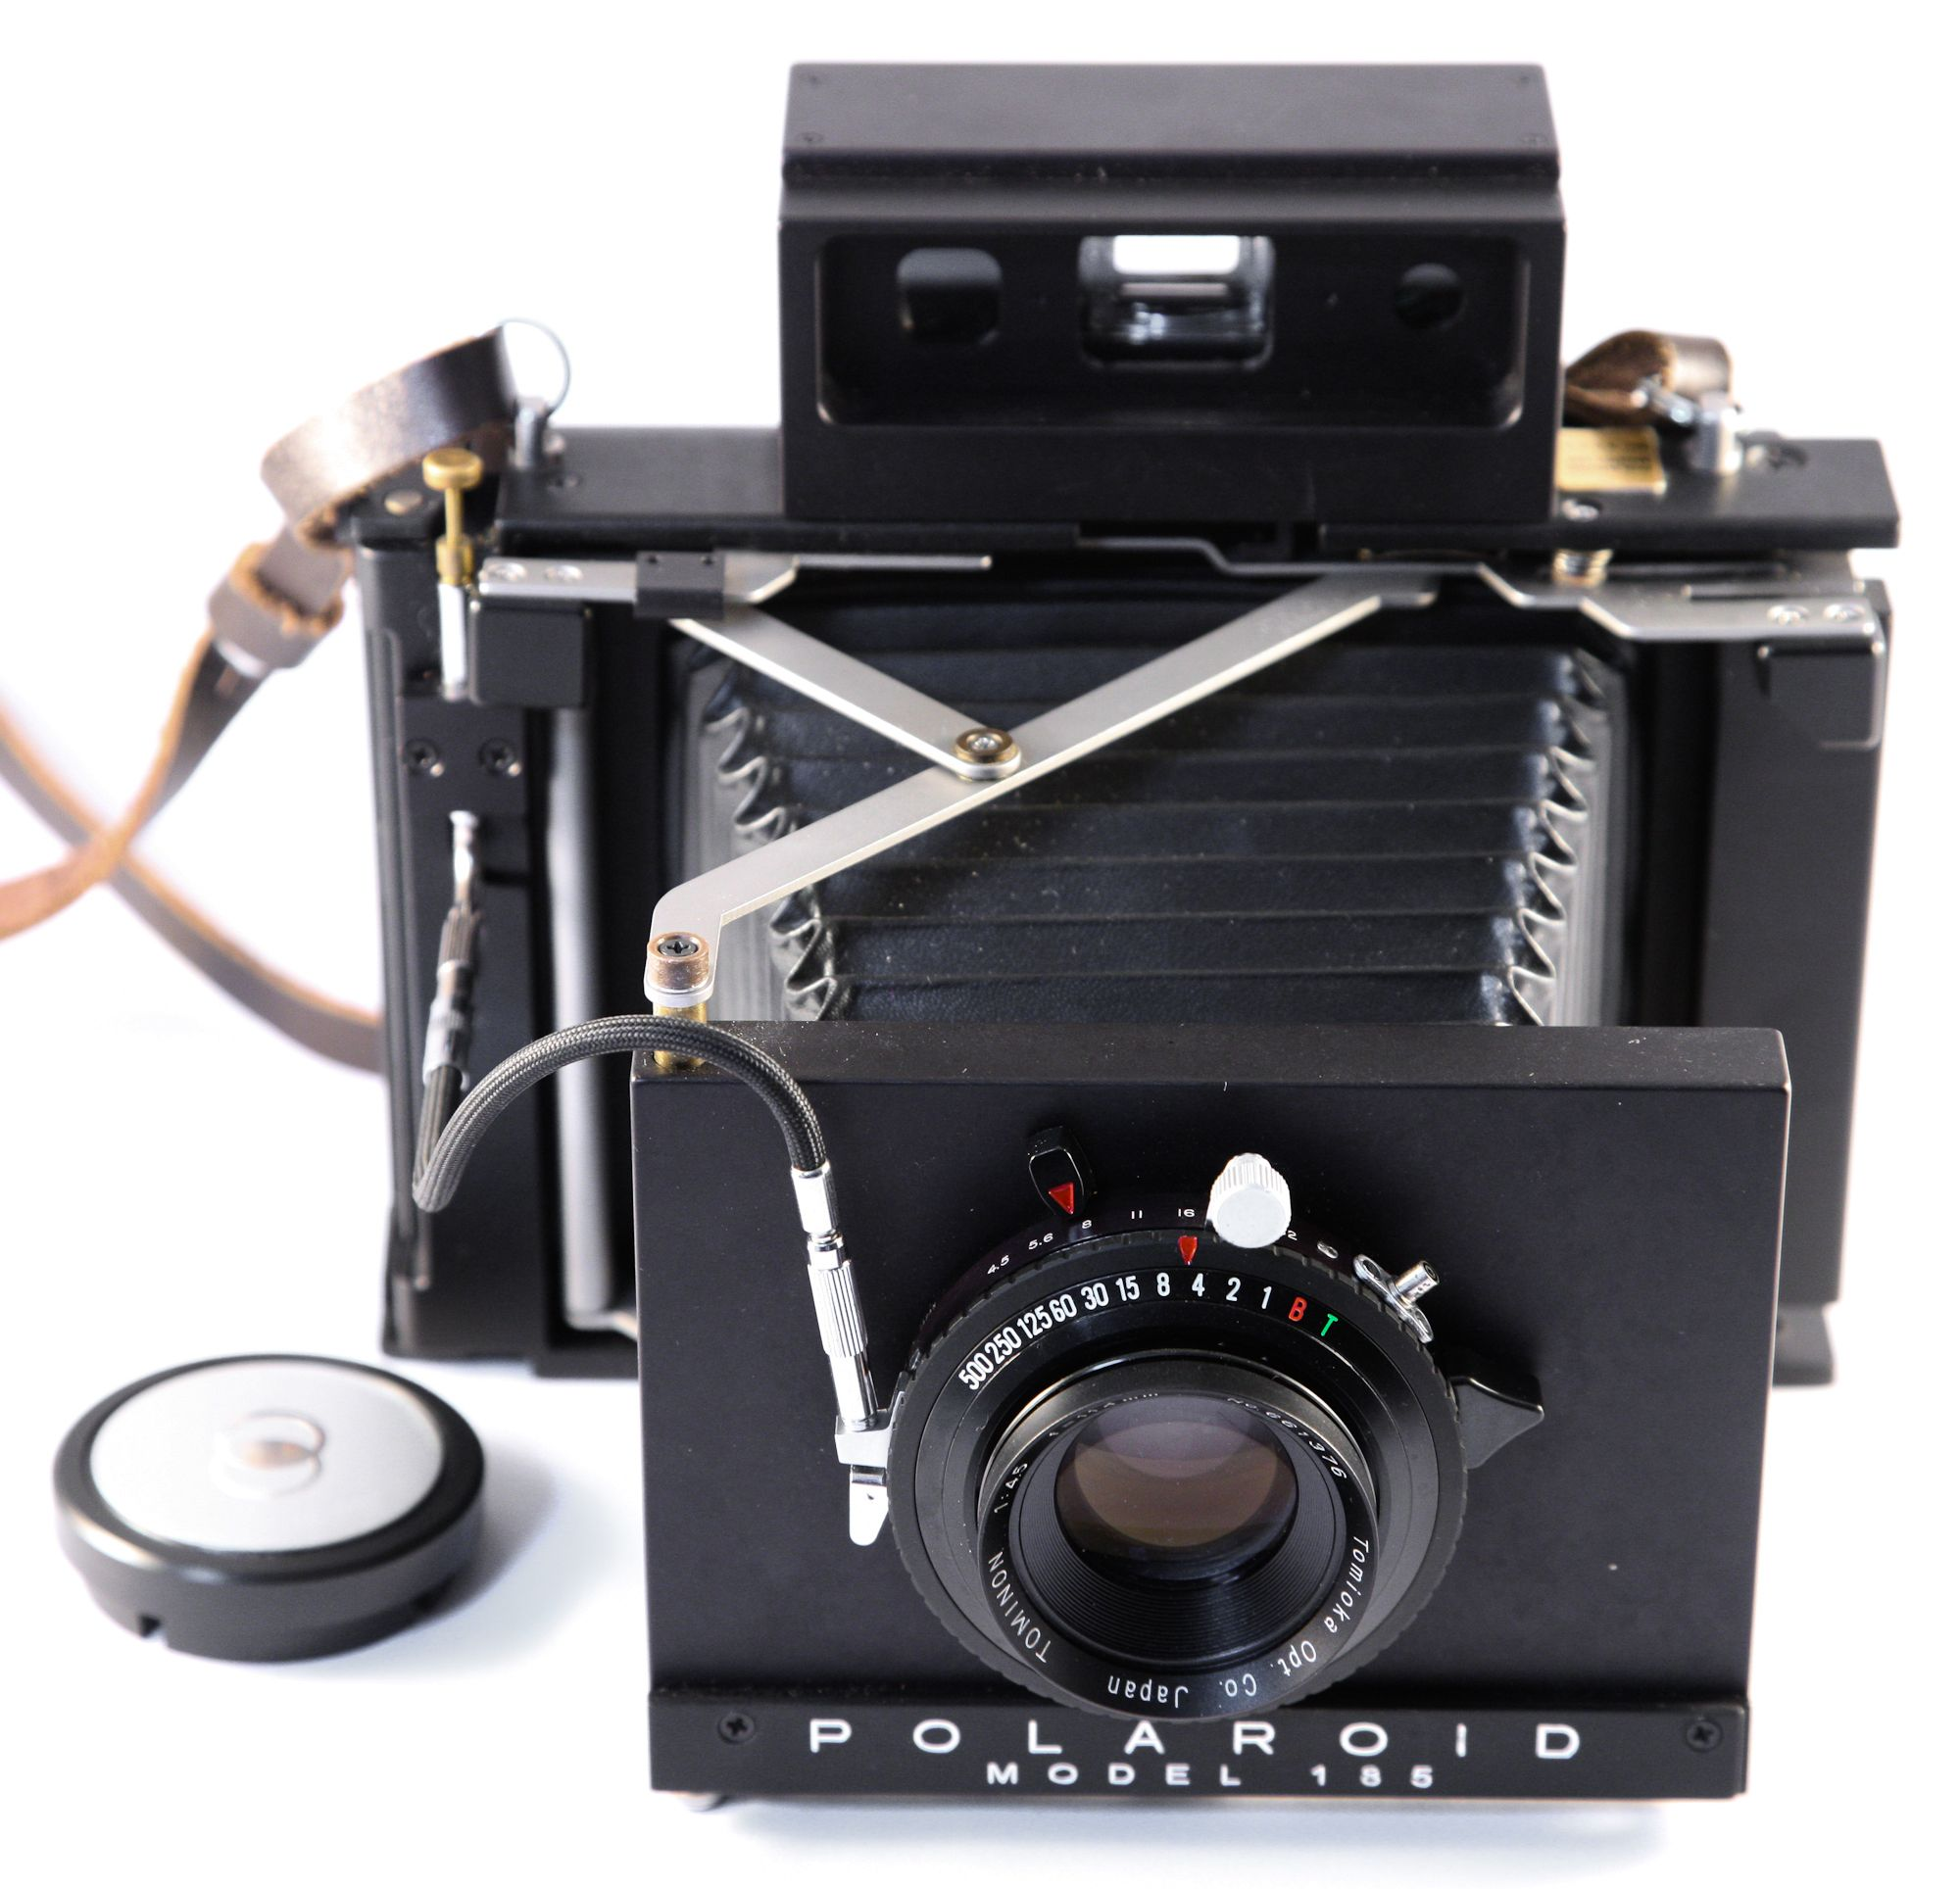 polaroid 185 - Google Search